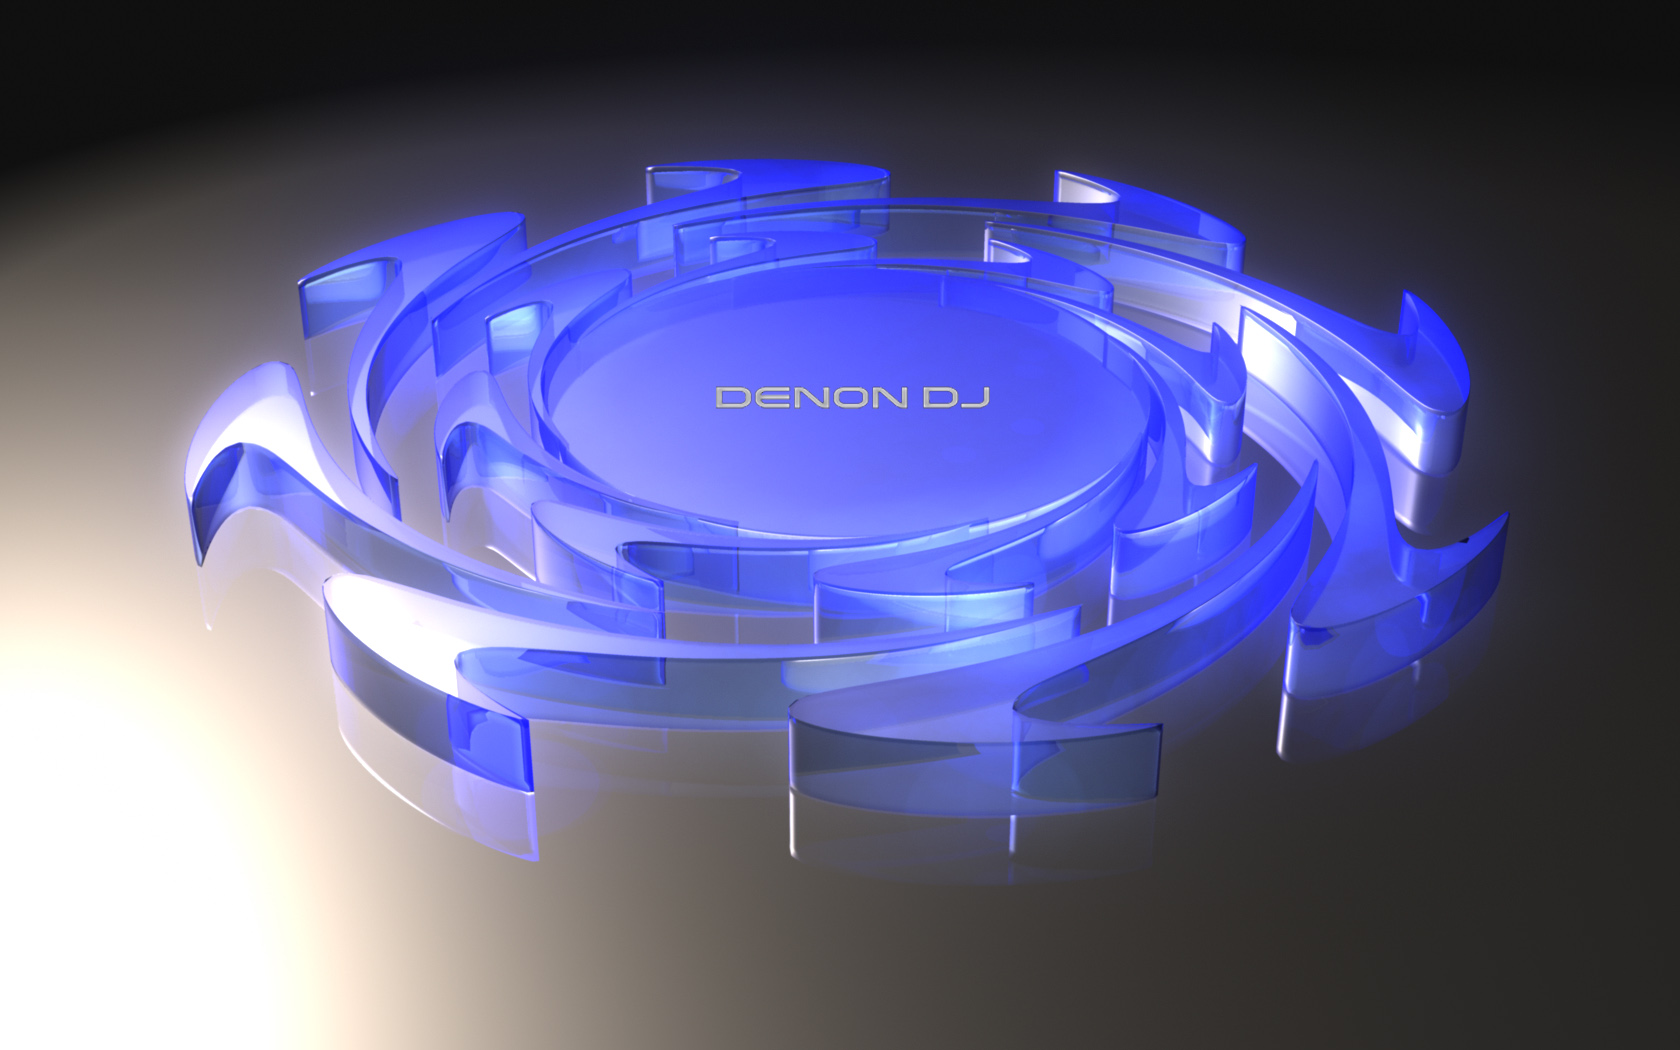 Denon Dj Wallpaper Joy Studio Design Gallery Best Design